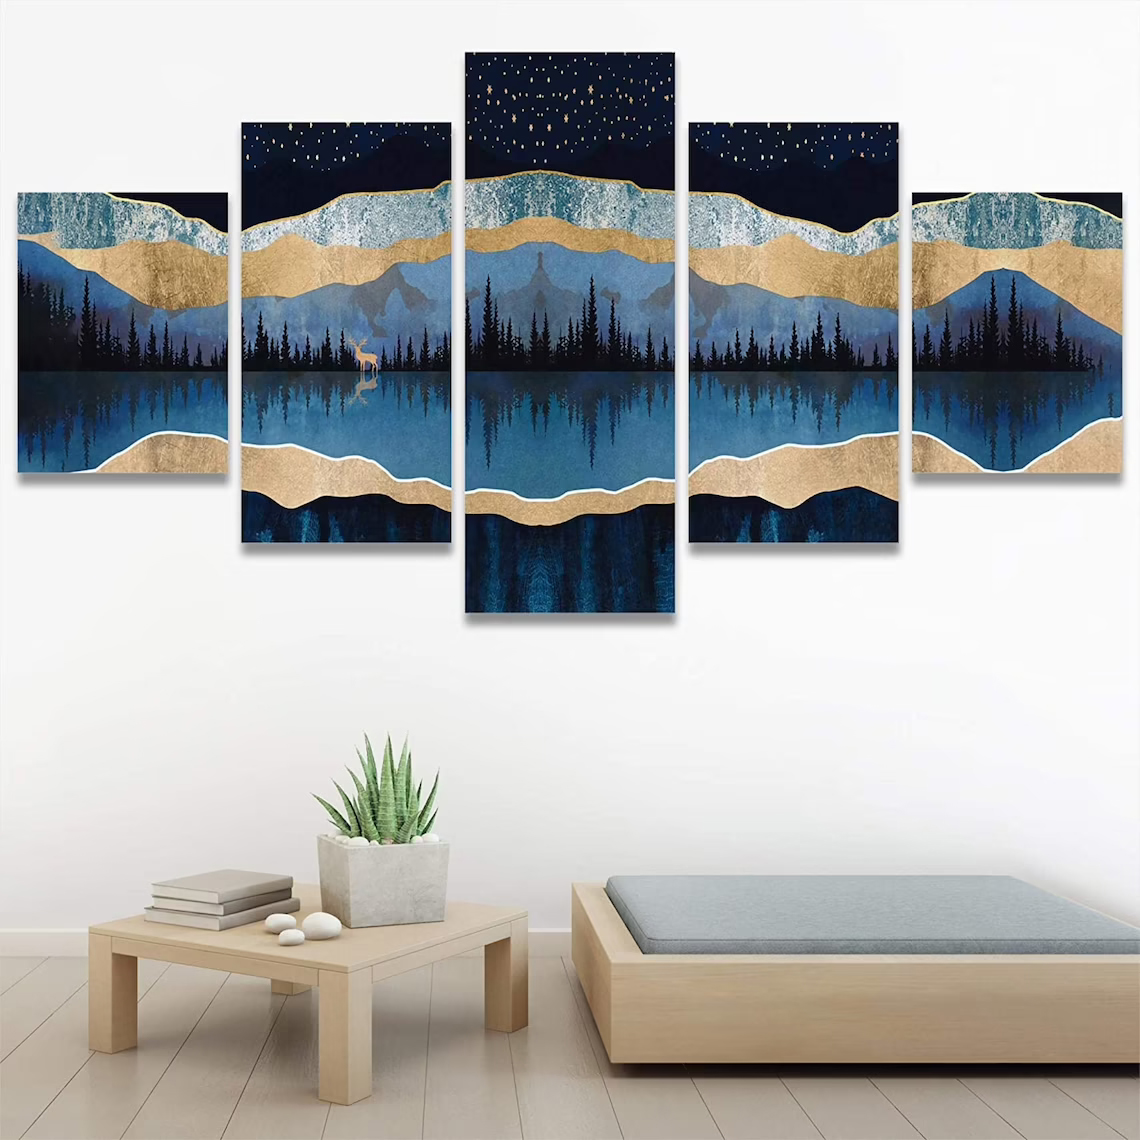 Mountain under blue sky and lake 5 piece wall art canvas